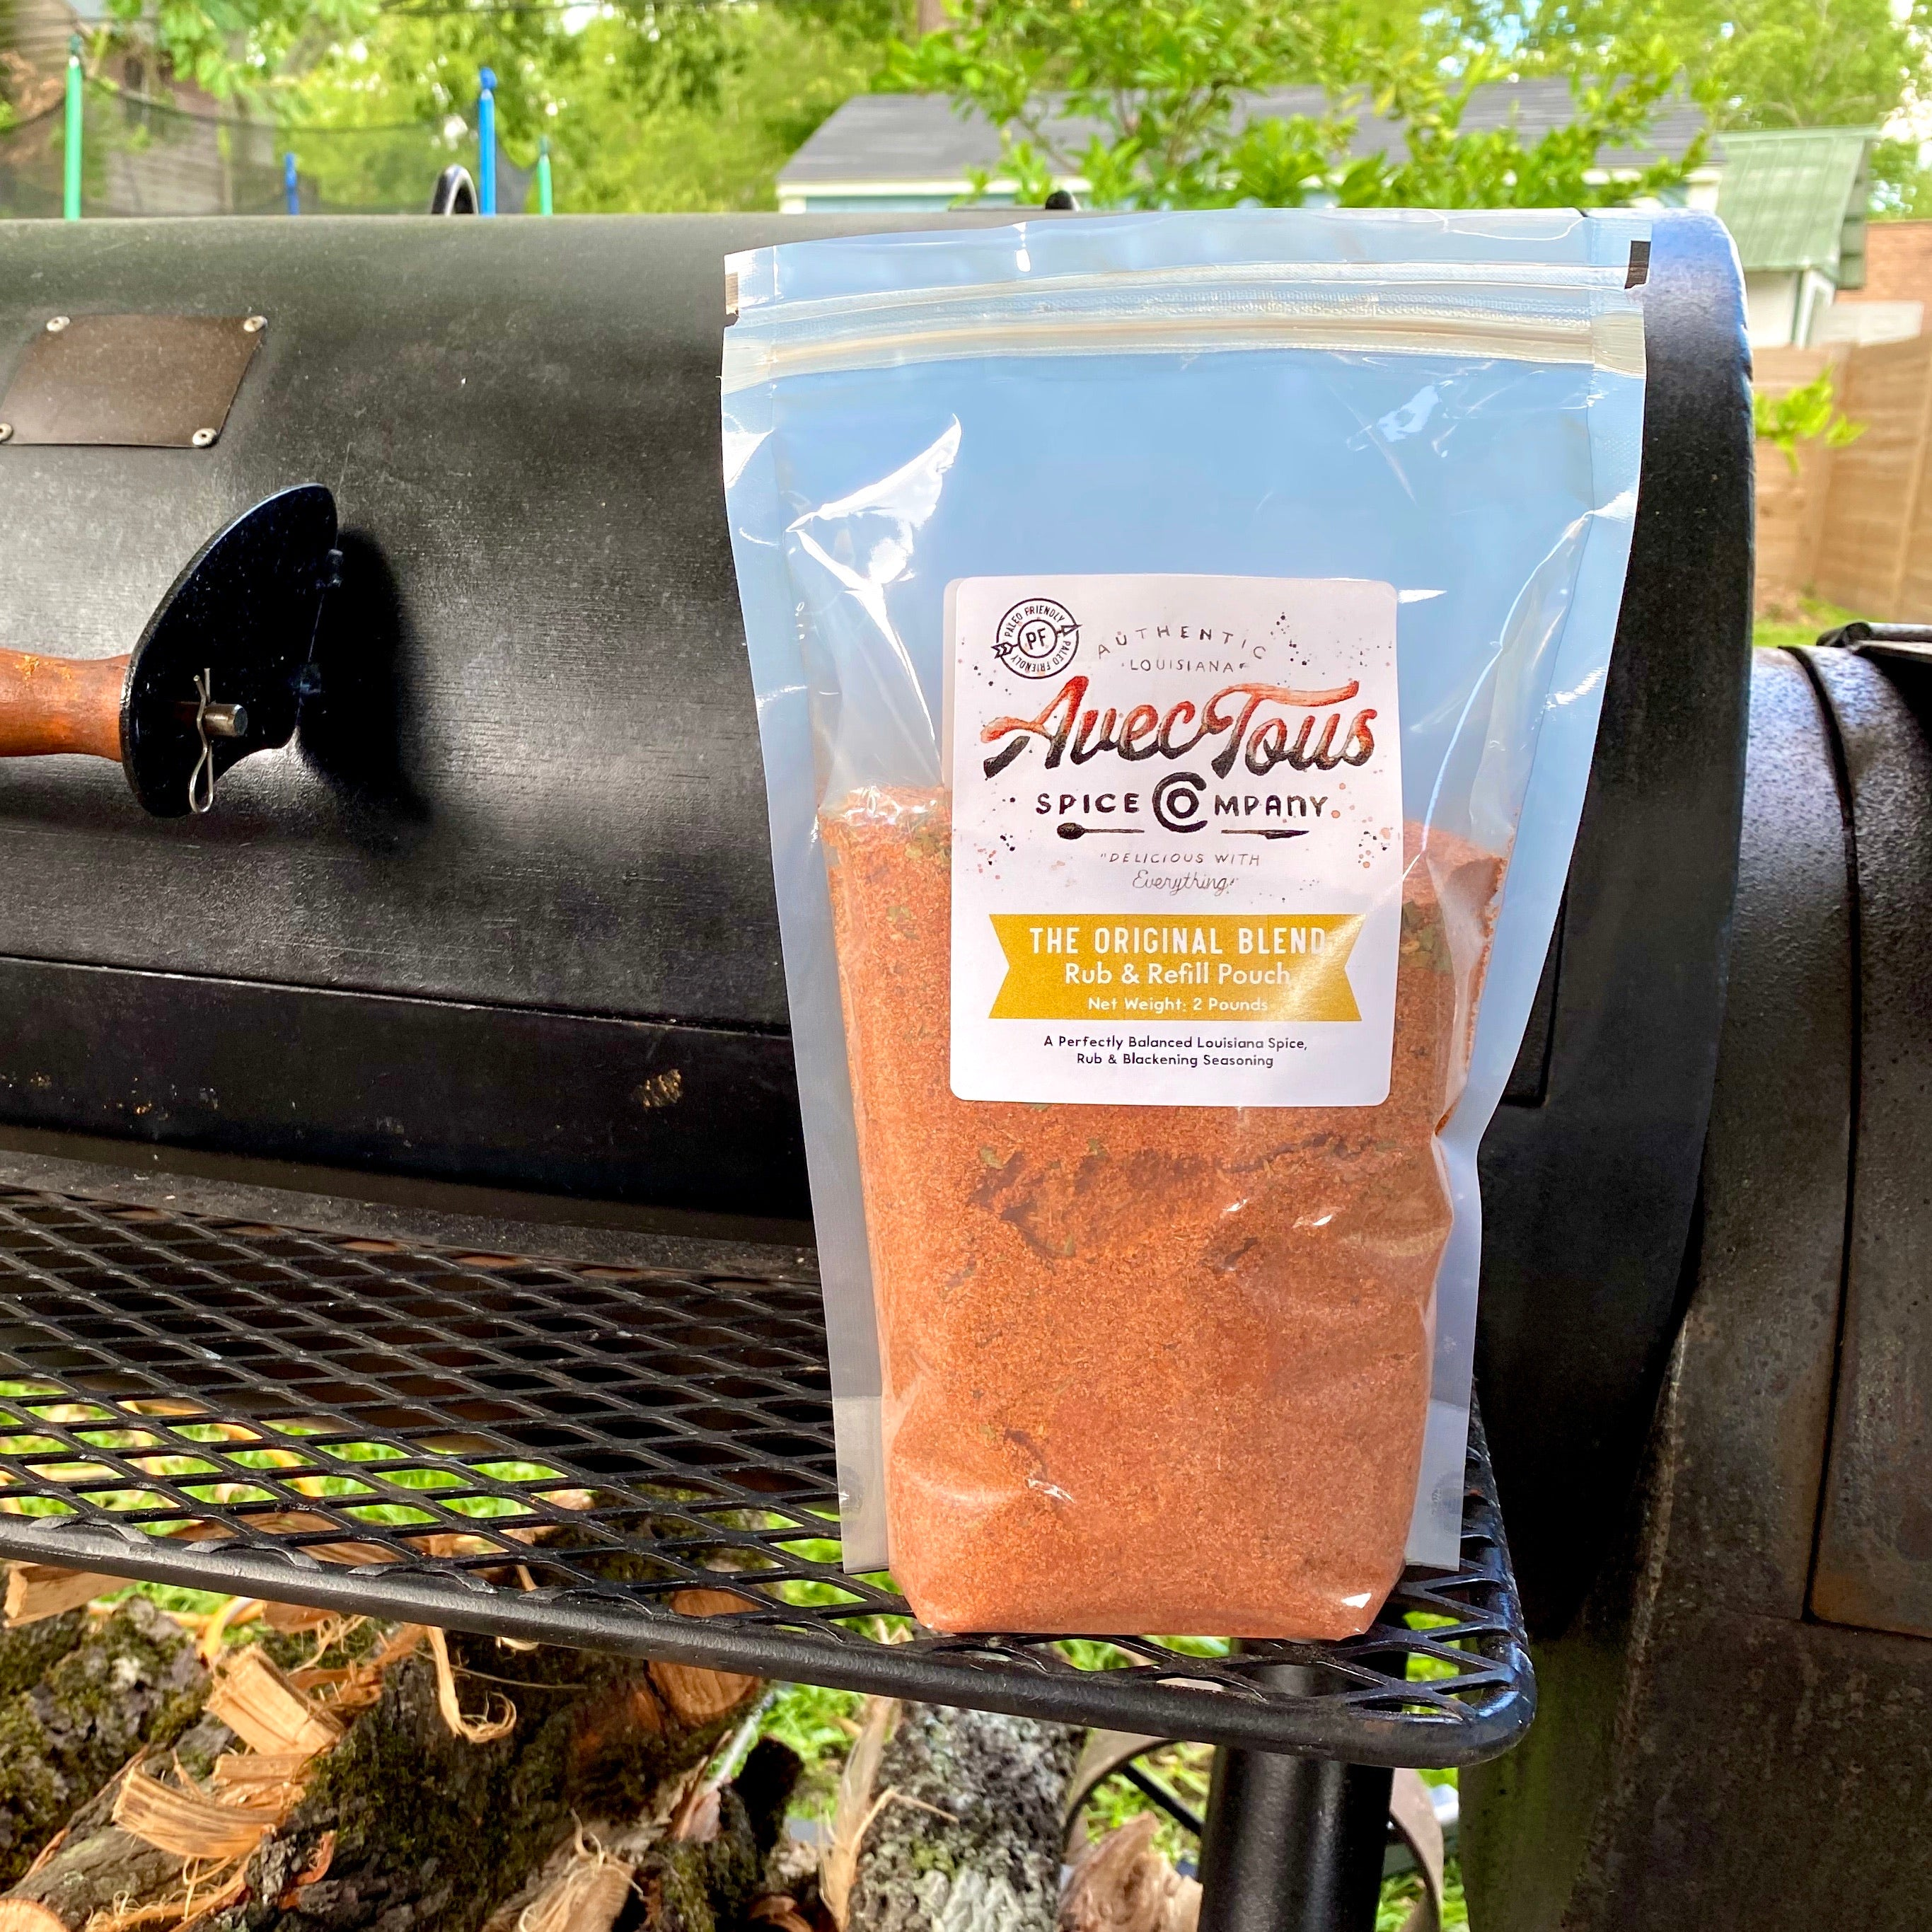 PRE-ORDER - The Original Blend: 2 LB Rub & Refill Pouch (equal to 6 bottles)